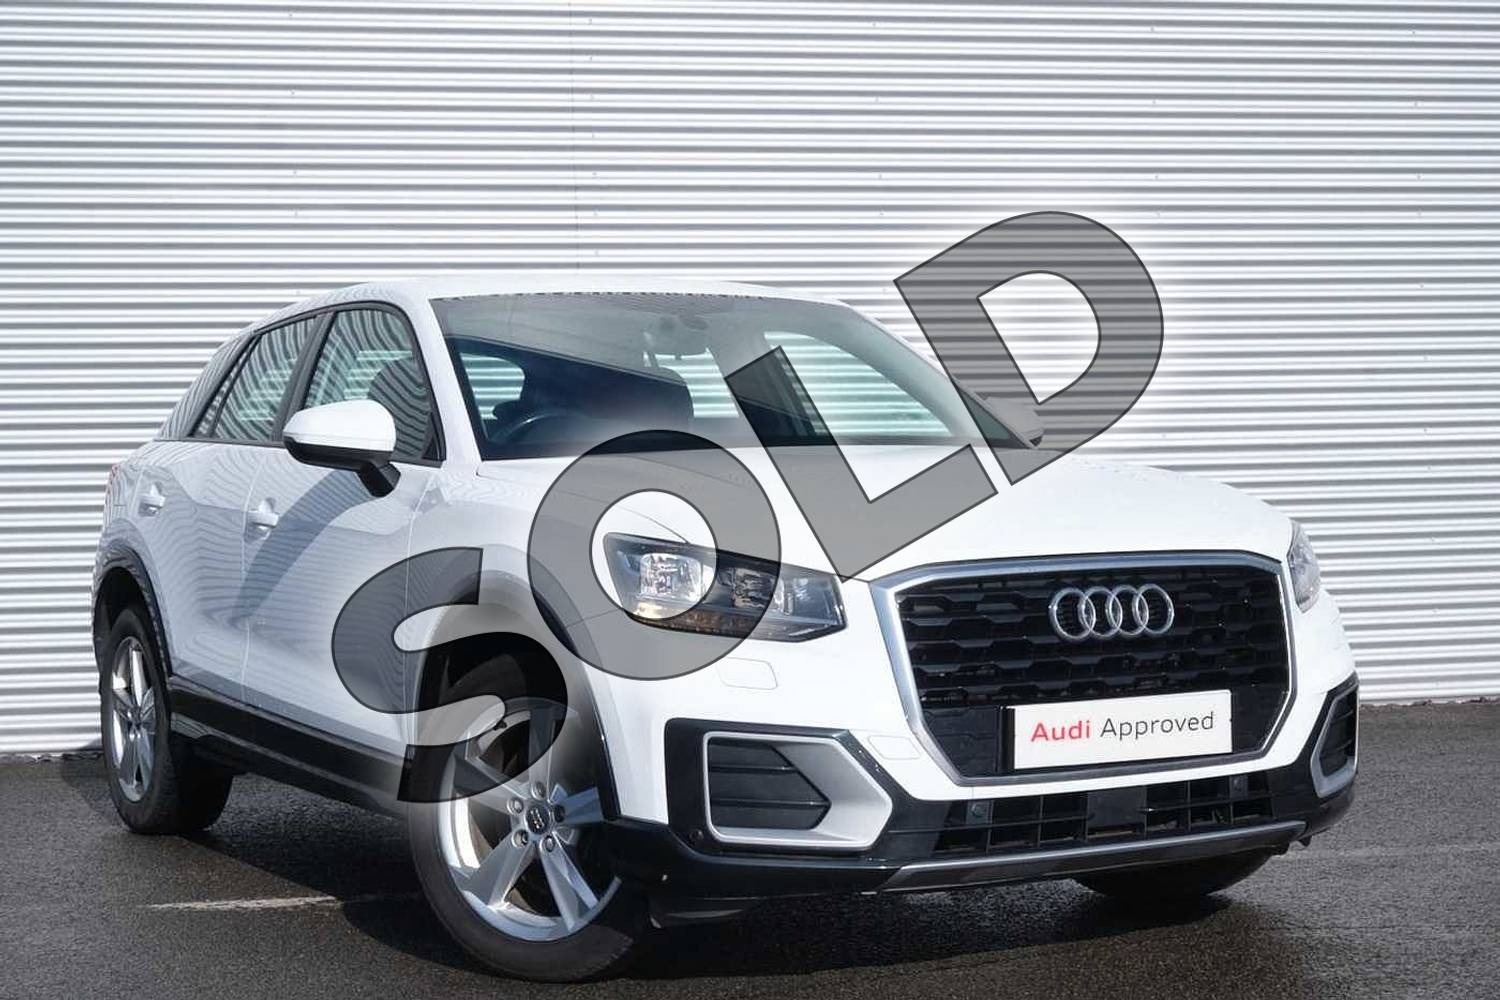 2017 Audi Q2 Estate 1.0 TFSI Sport 5dr in Ibis White at Coventry Audi